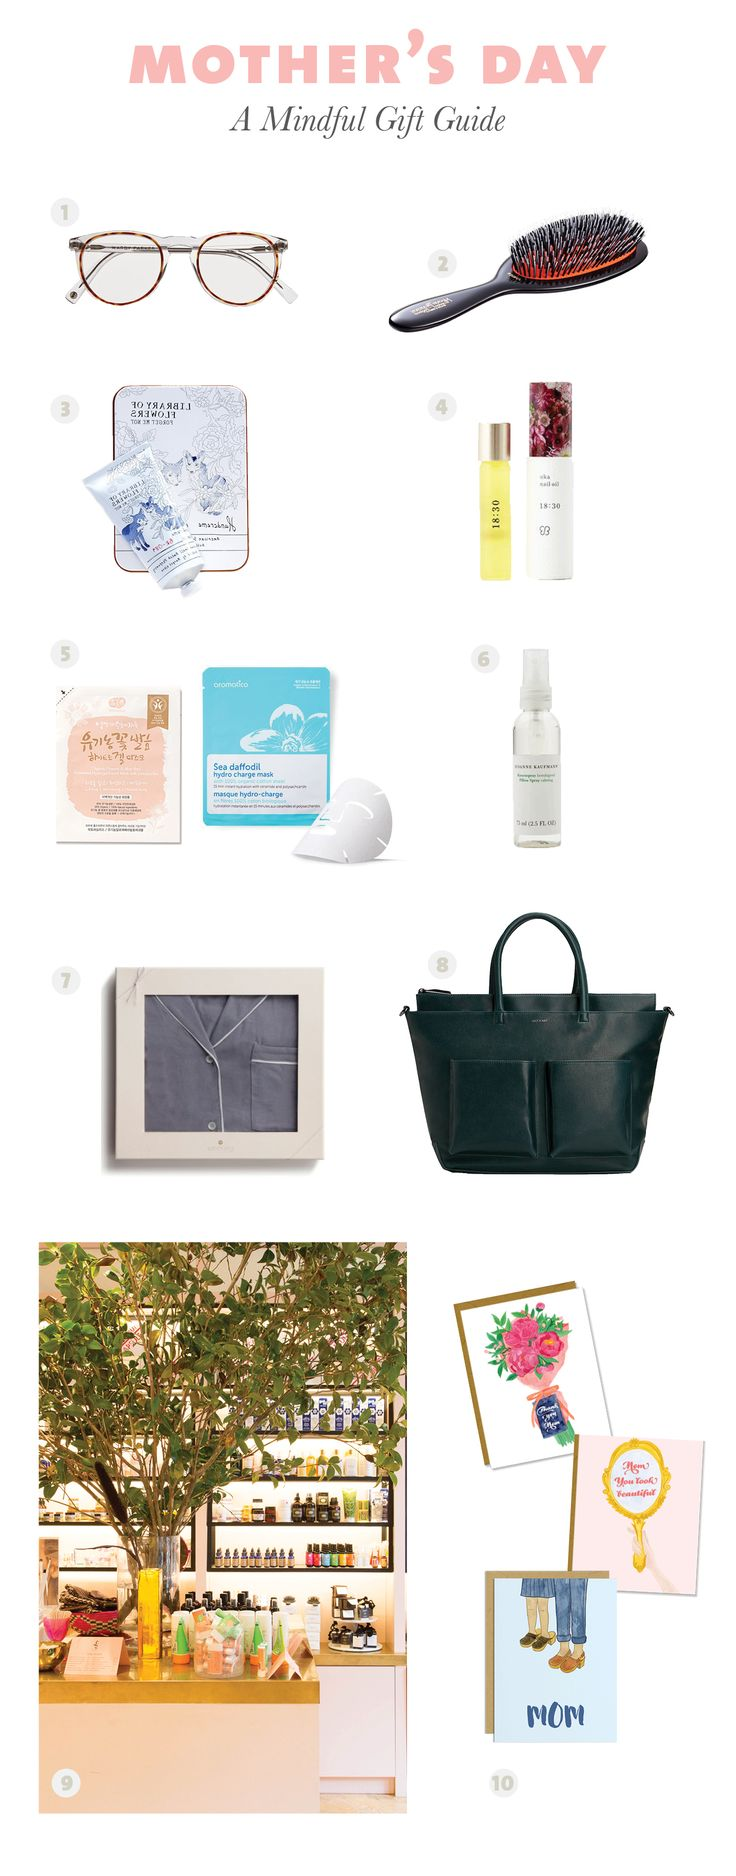 A mindful mothers day gift guide gift guide